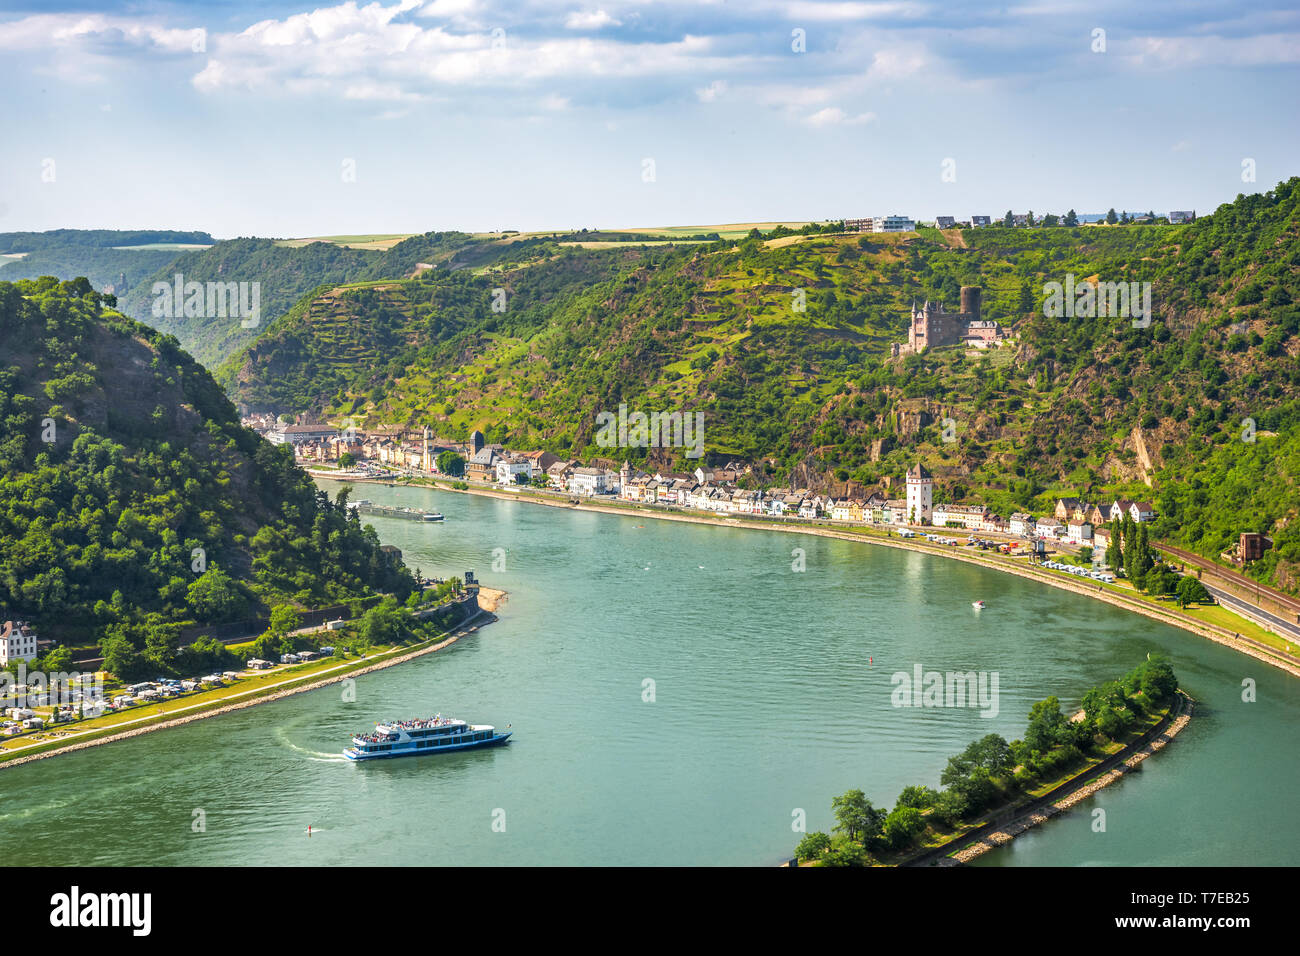 View from Loreley to Sankt Goarhausen, Germany Stock Photo